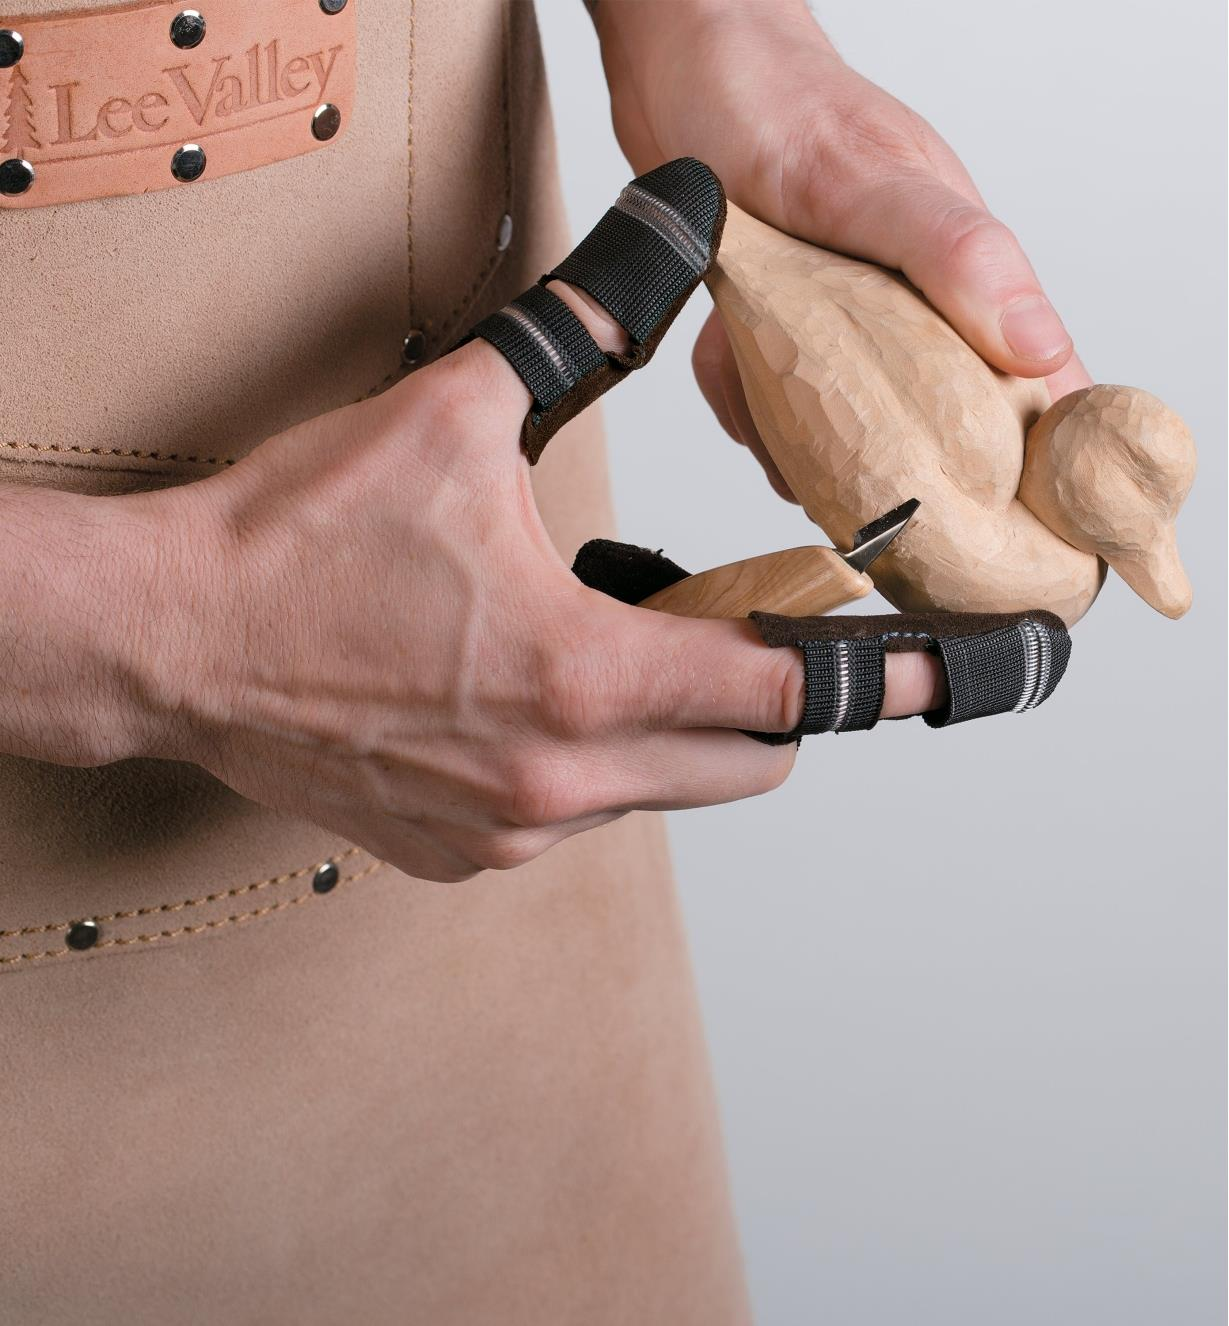 Carving a duck while wearing Leather Thumb & Finger Guards